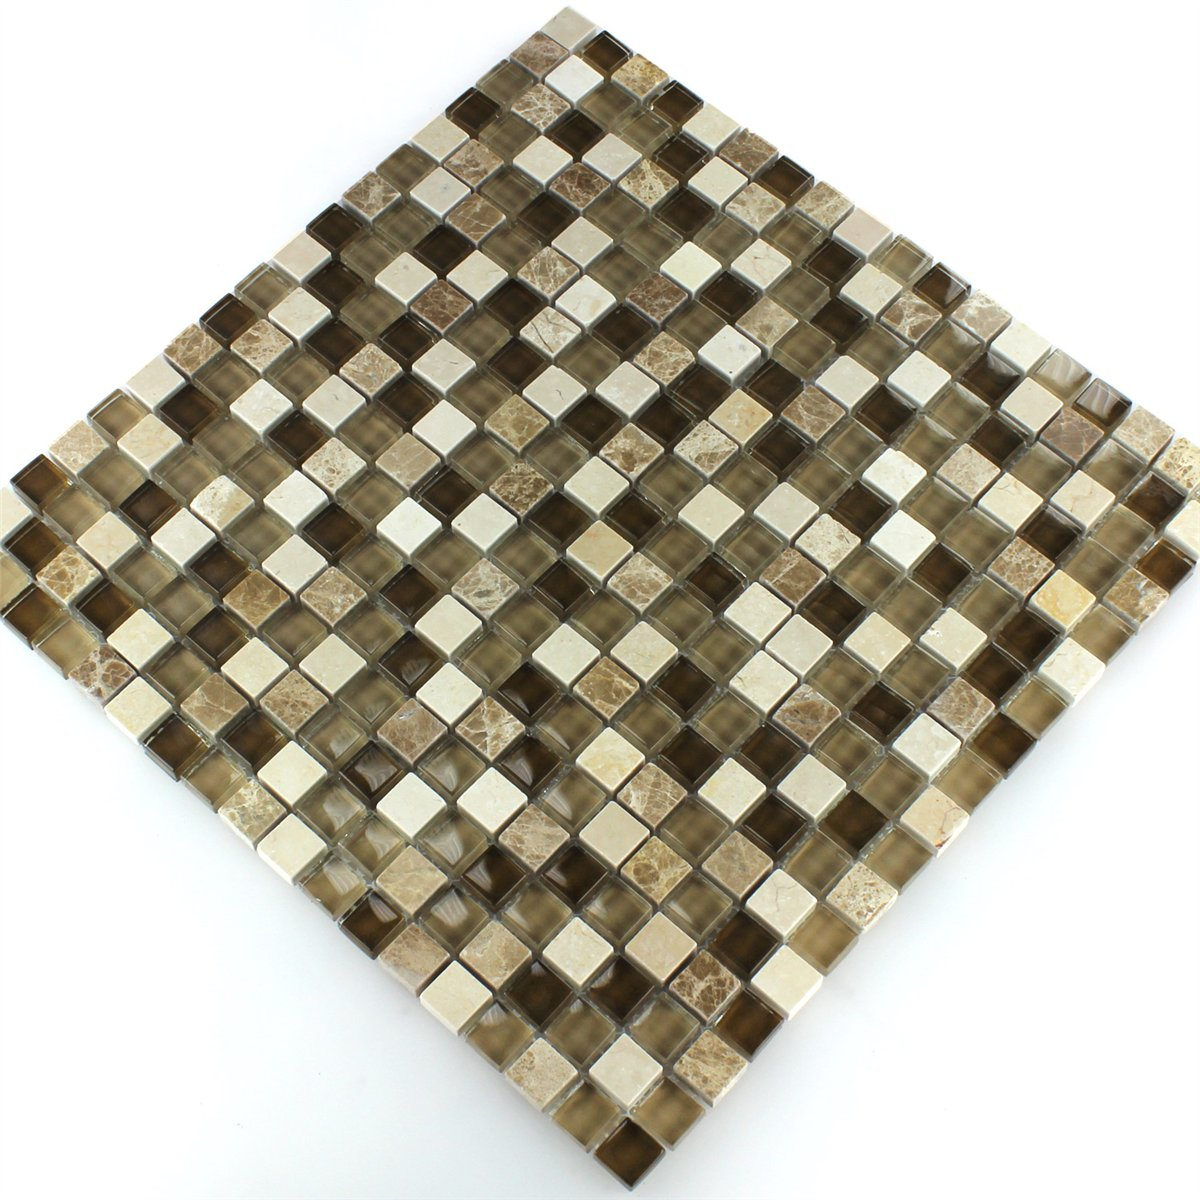 Glass Marble Mosaic Tile Brown Beige Ht88346m